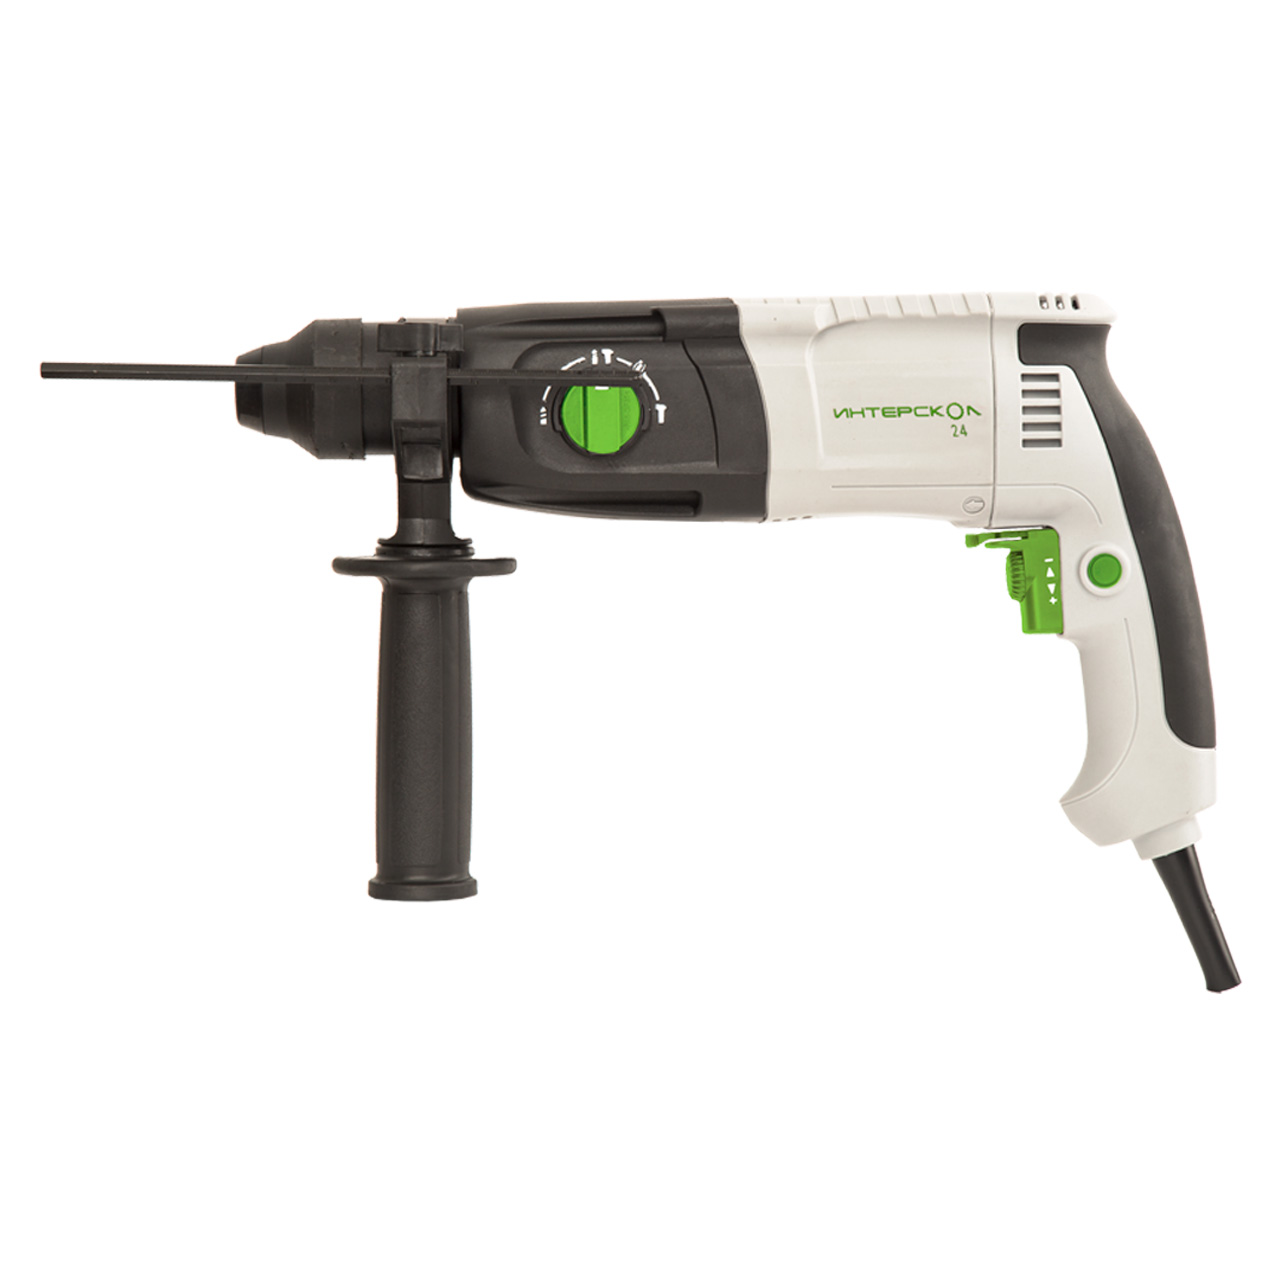 Rotary hammer electric Interskol P-24/650ER DM rotary hammer electric pobeda p 20 620 sds